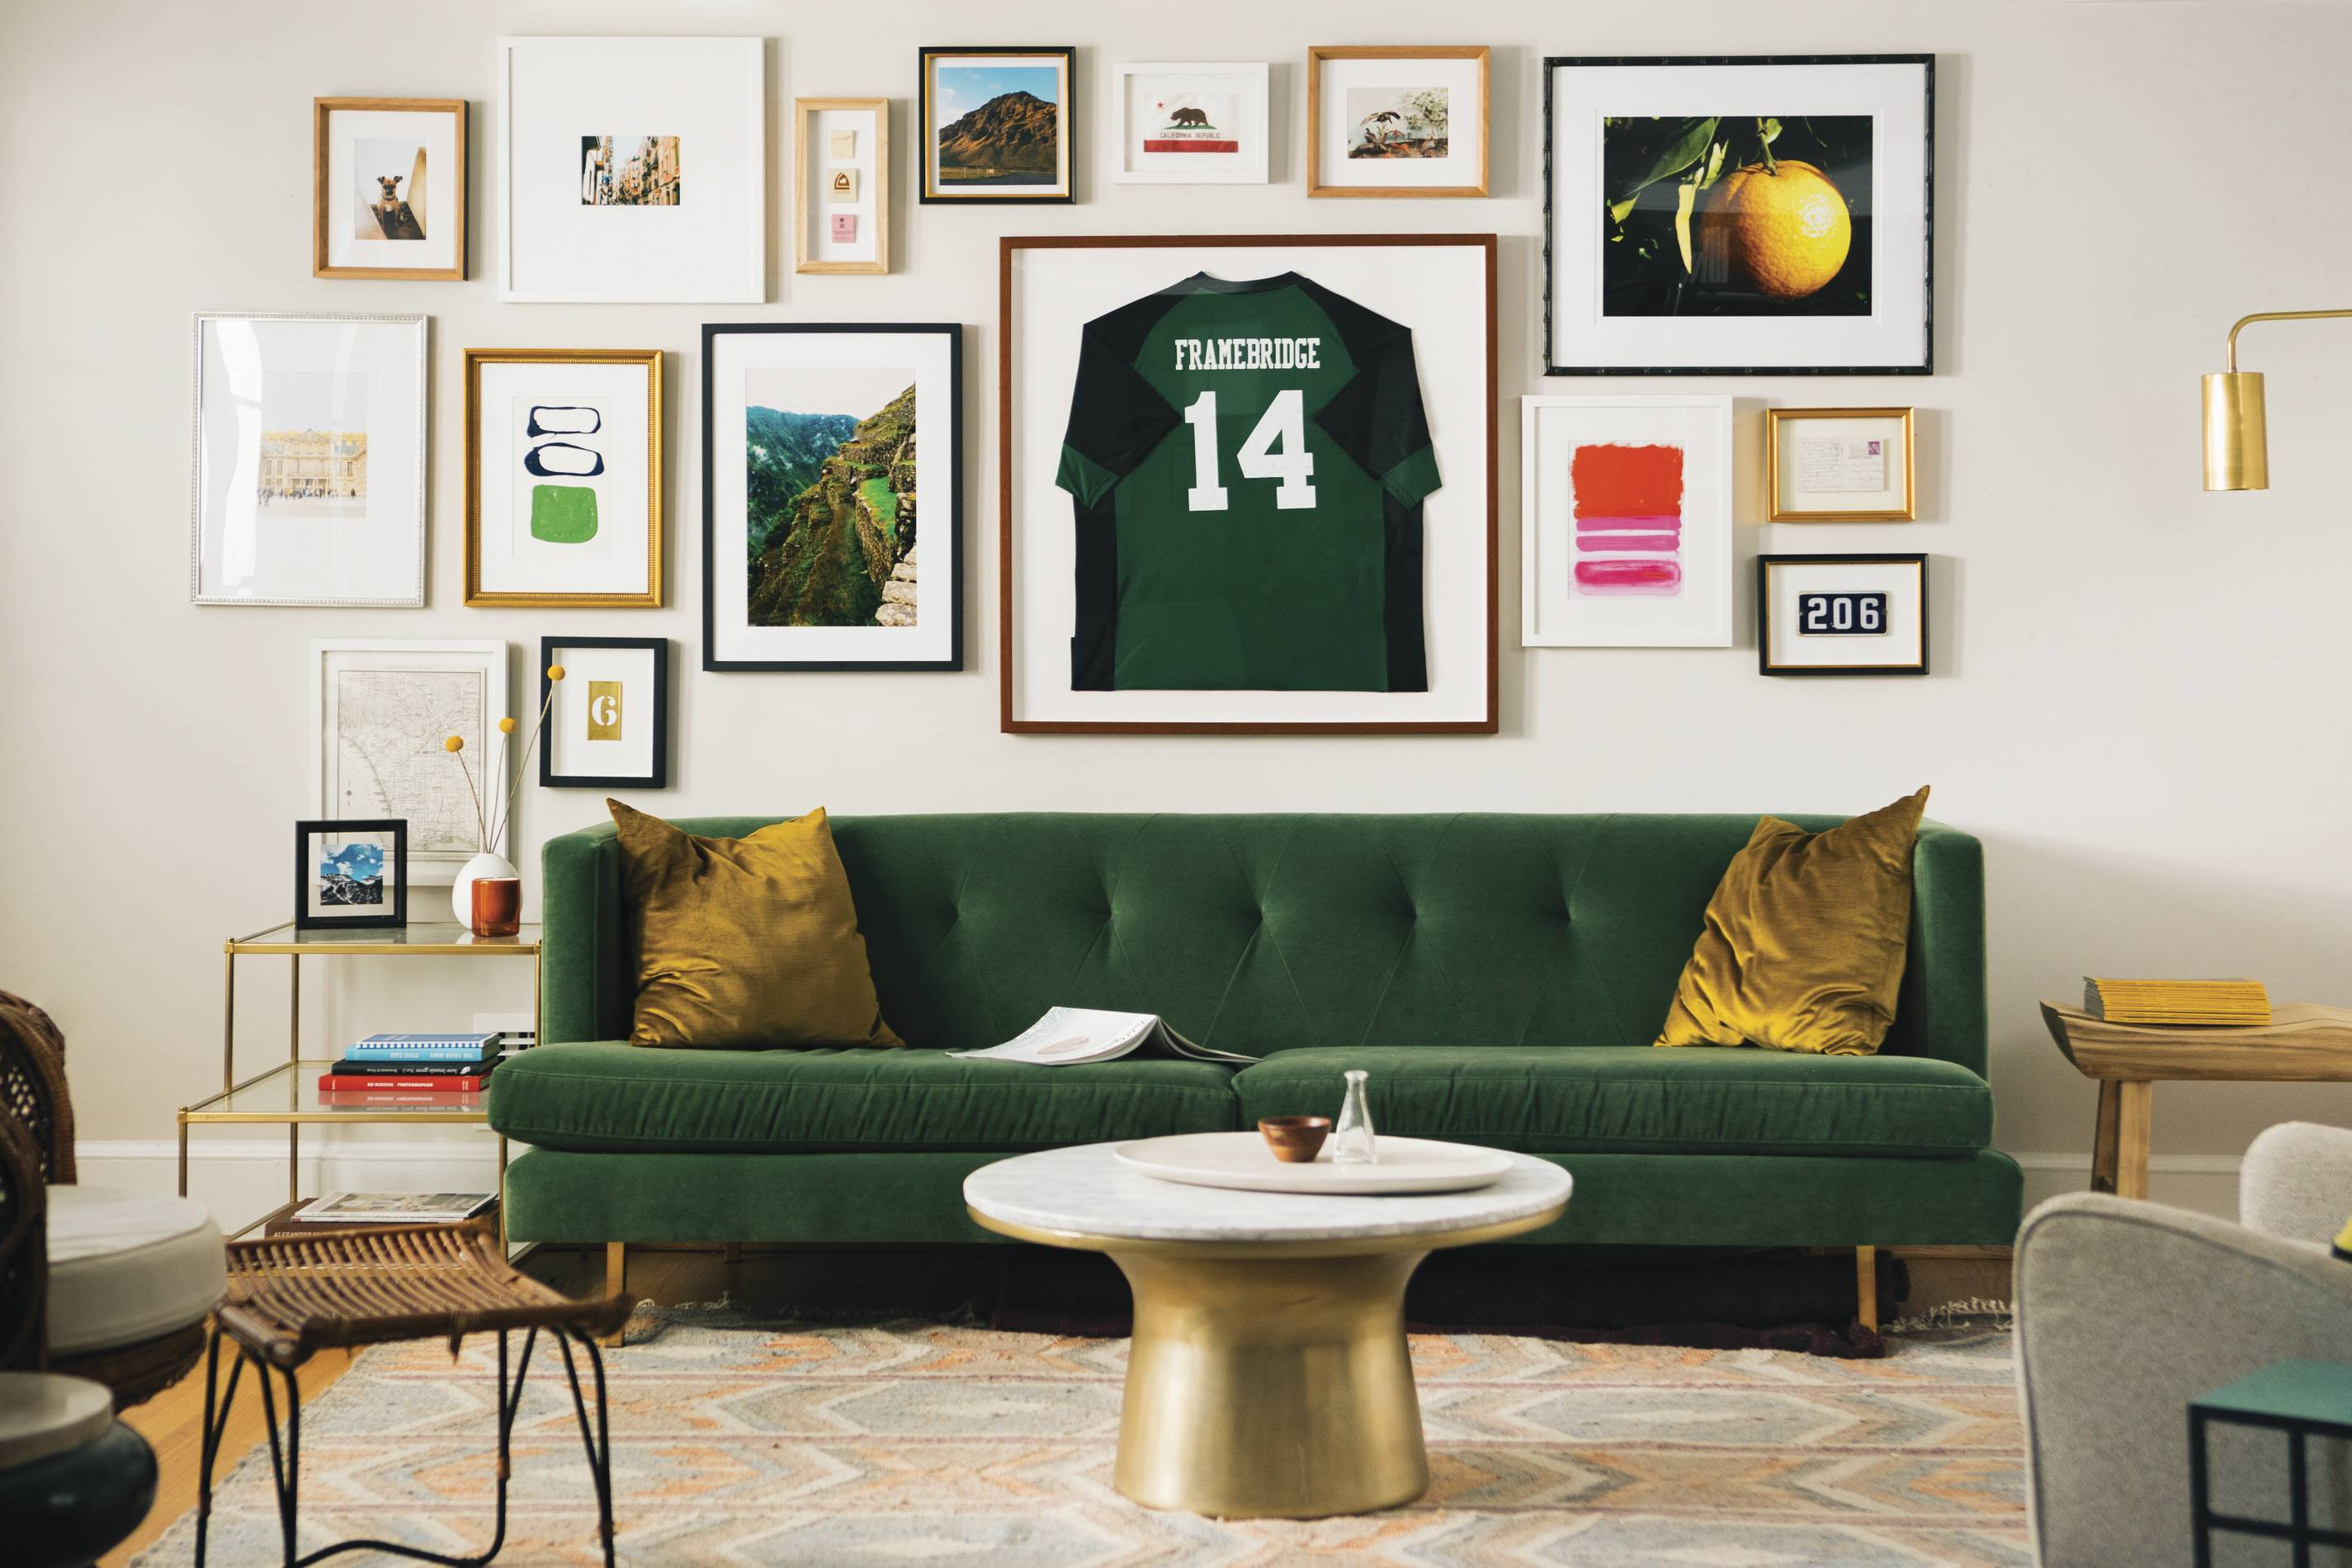 070920MarketingJerseyFraming102Edit.jpg